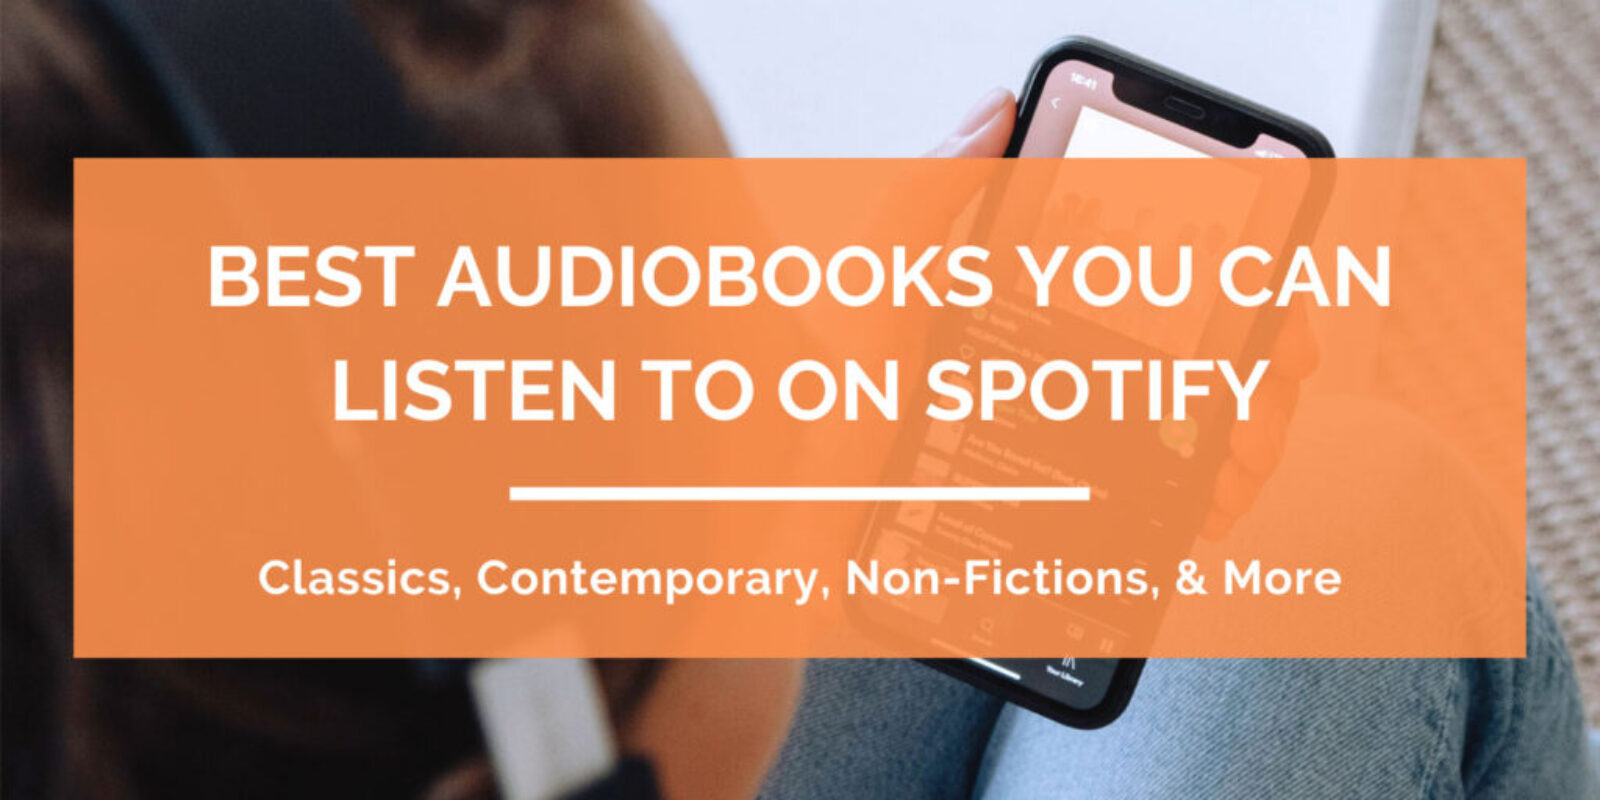 Best-Audiobooks-You-Can-Listen-To-On-Spotify